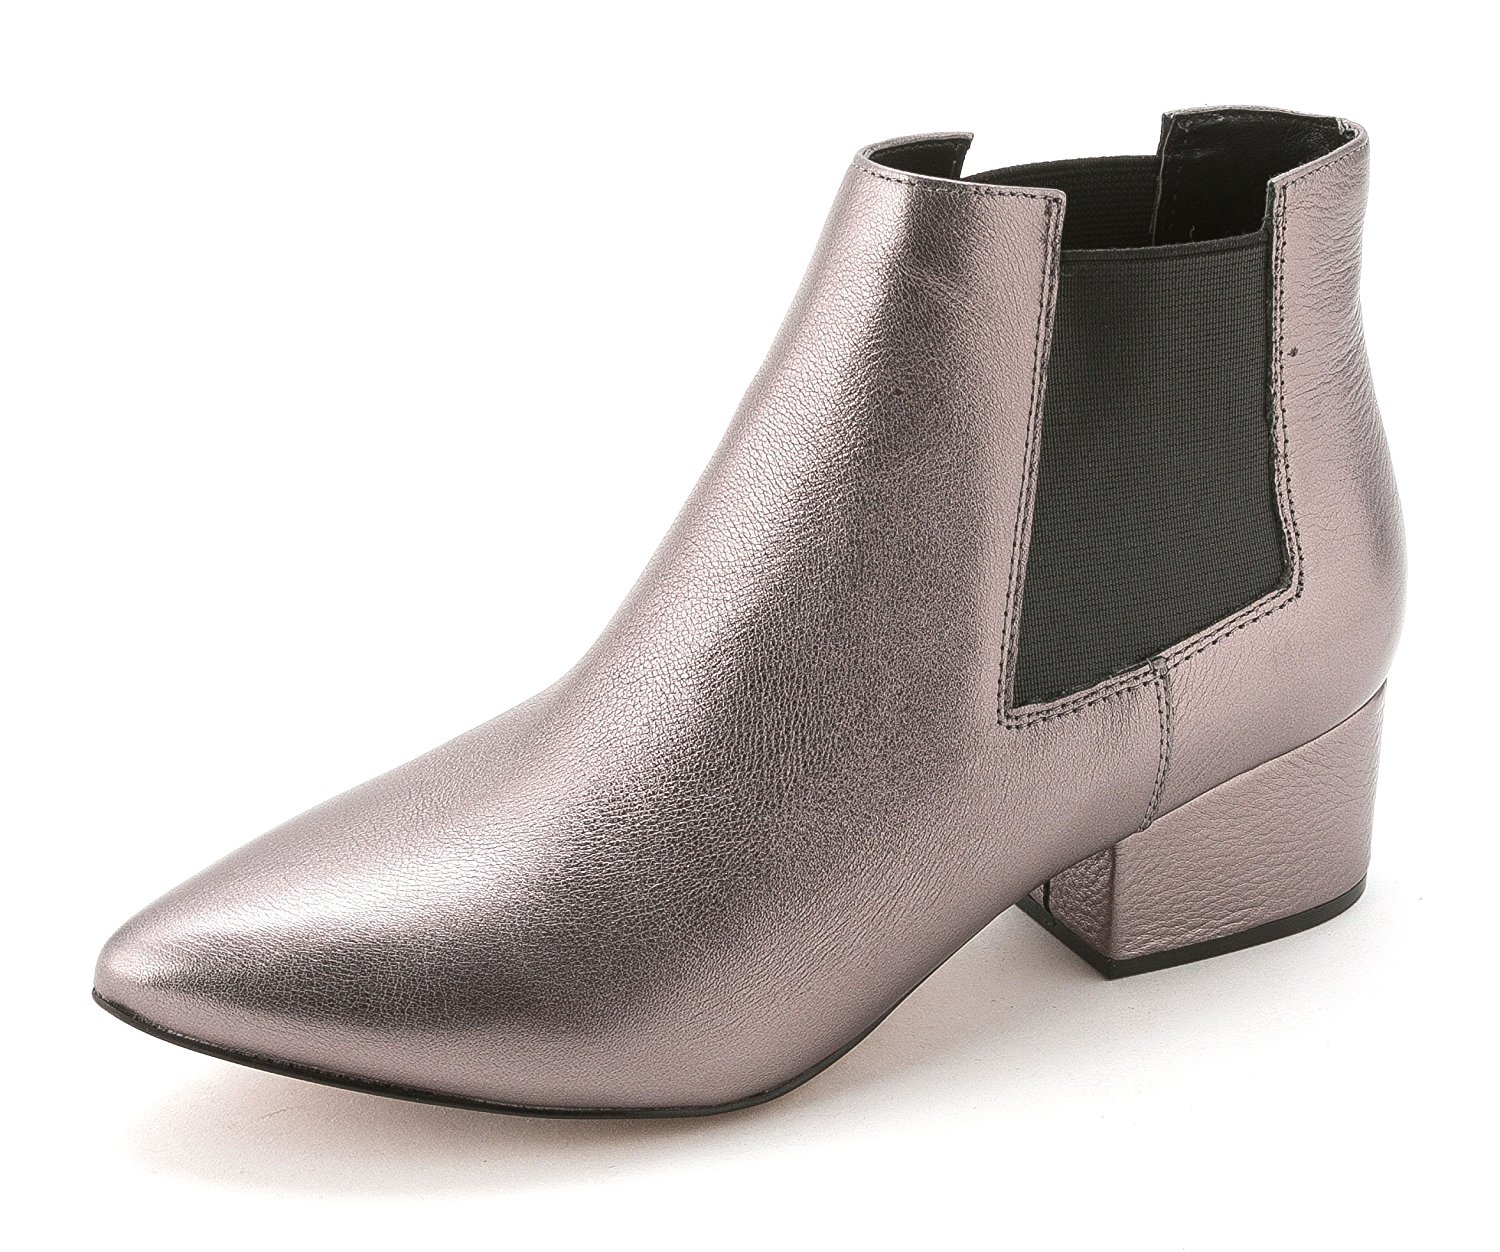 642462122f2 French Connection - French Connection Women's Ronan Chelsea Boot -  Walmart.com